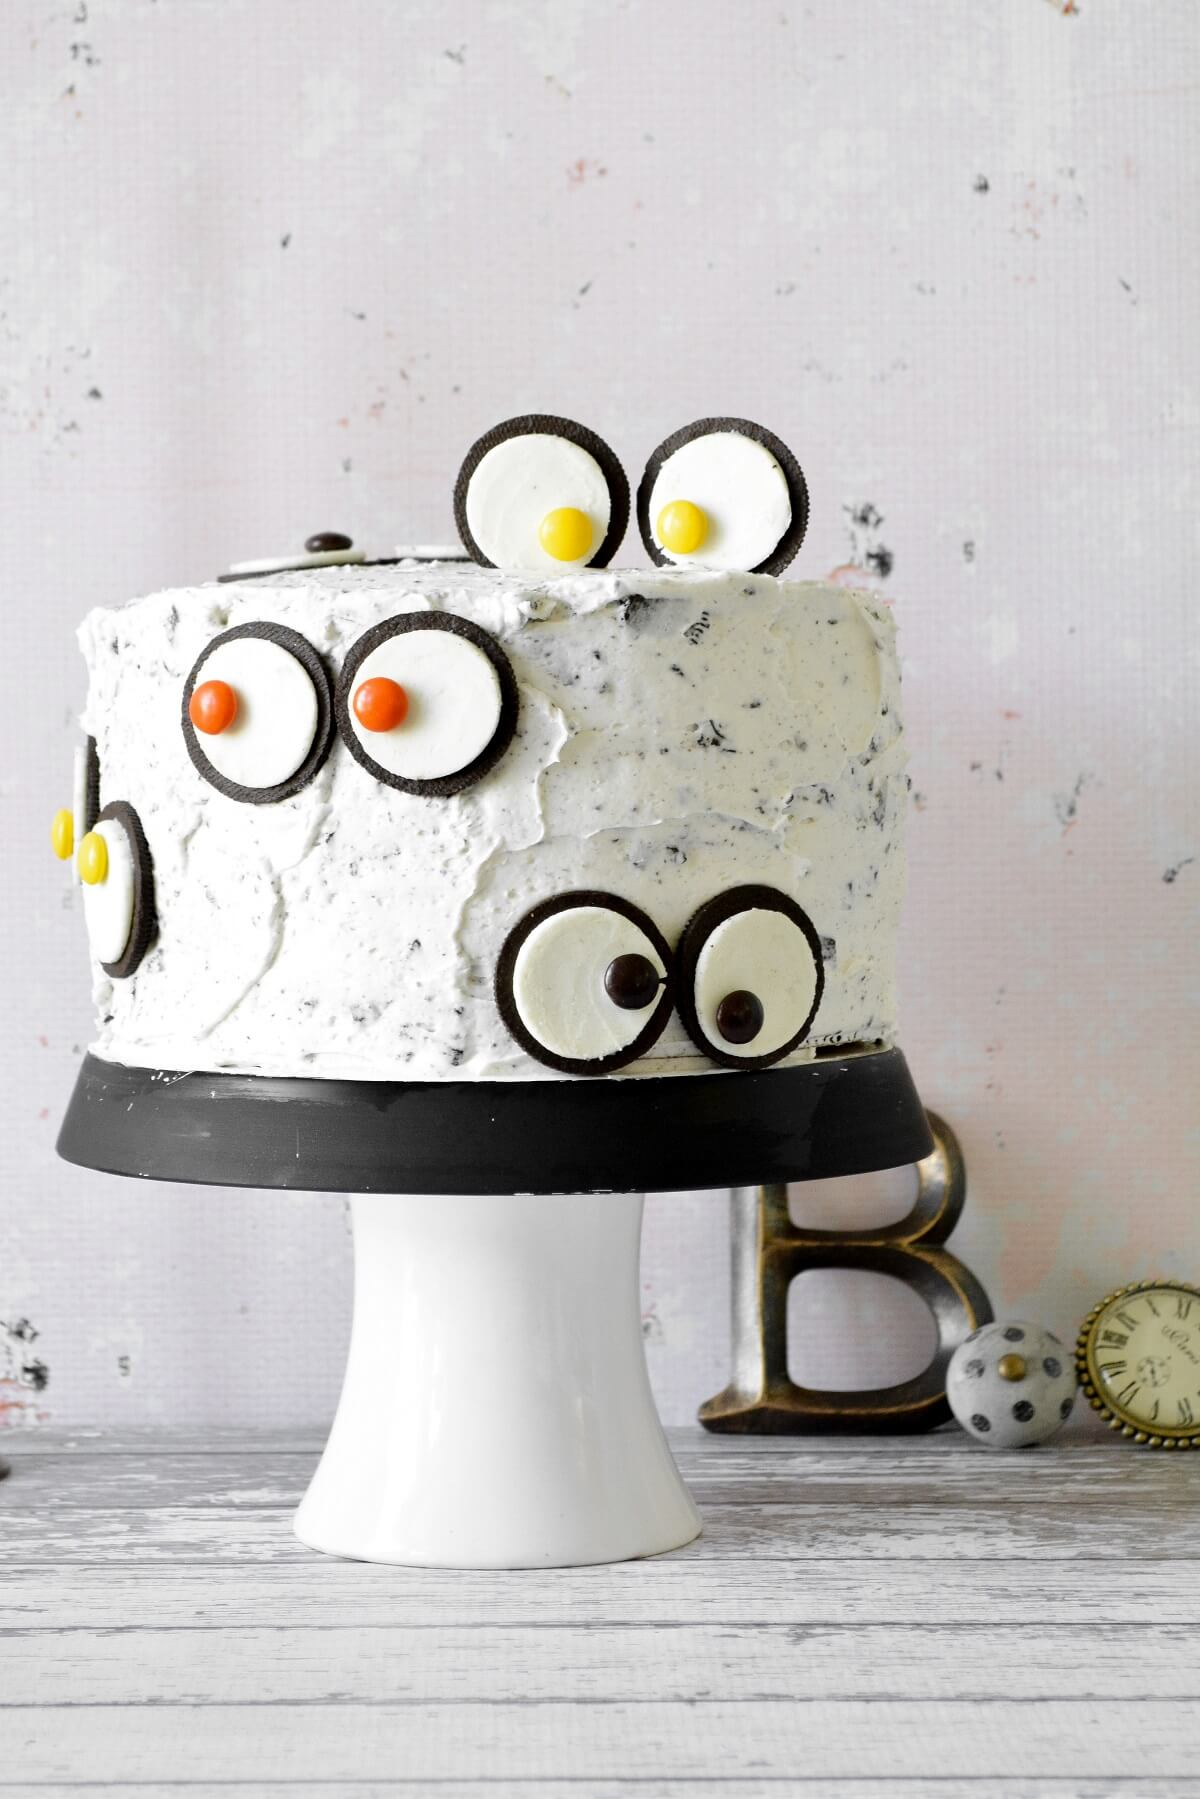 A Halloween cake with Oreo monster eyes.